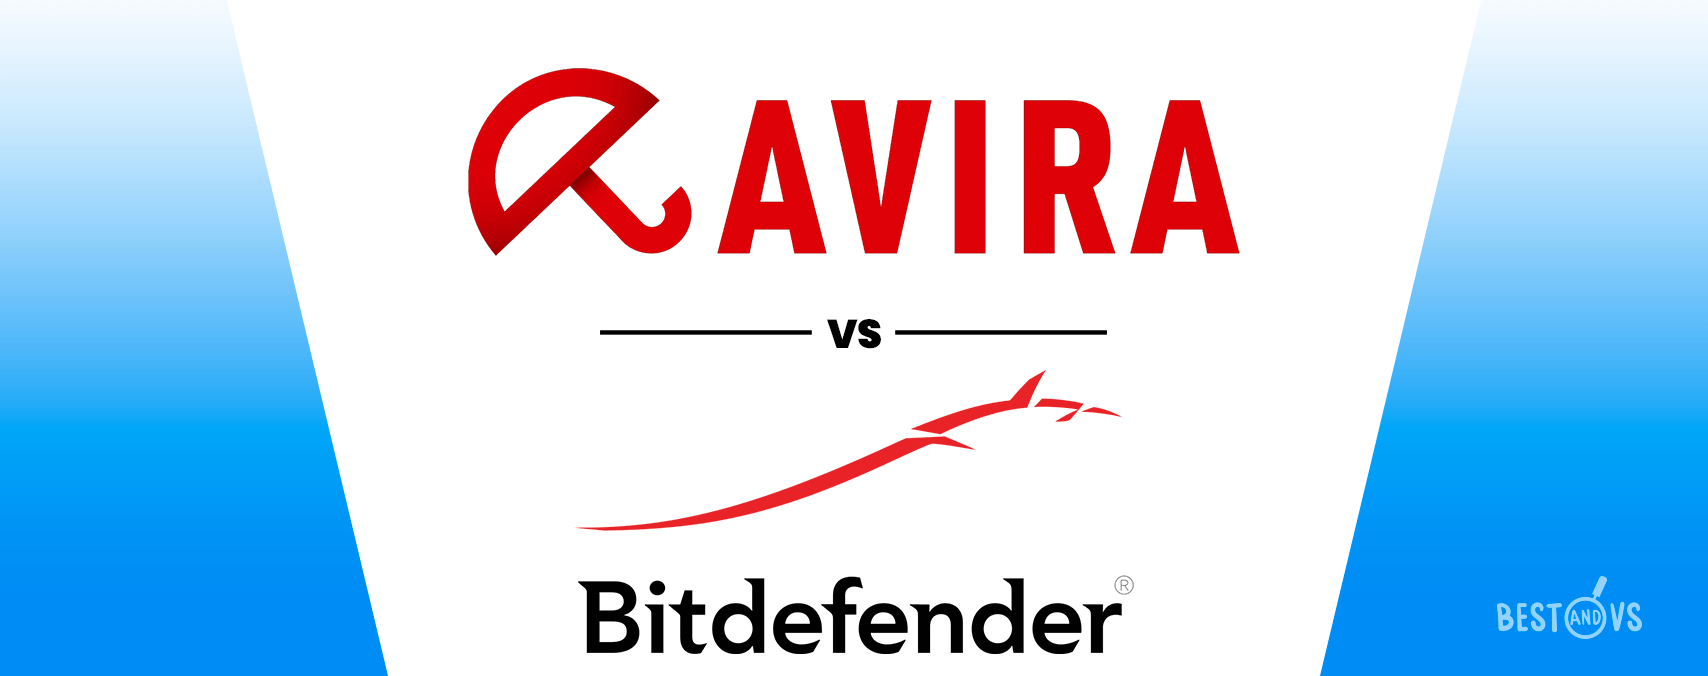 Avira Vs. Bitdefender (2019) Features and Pricing